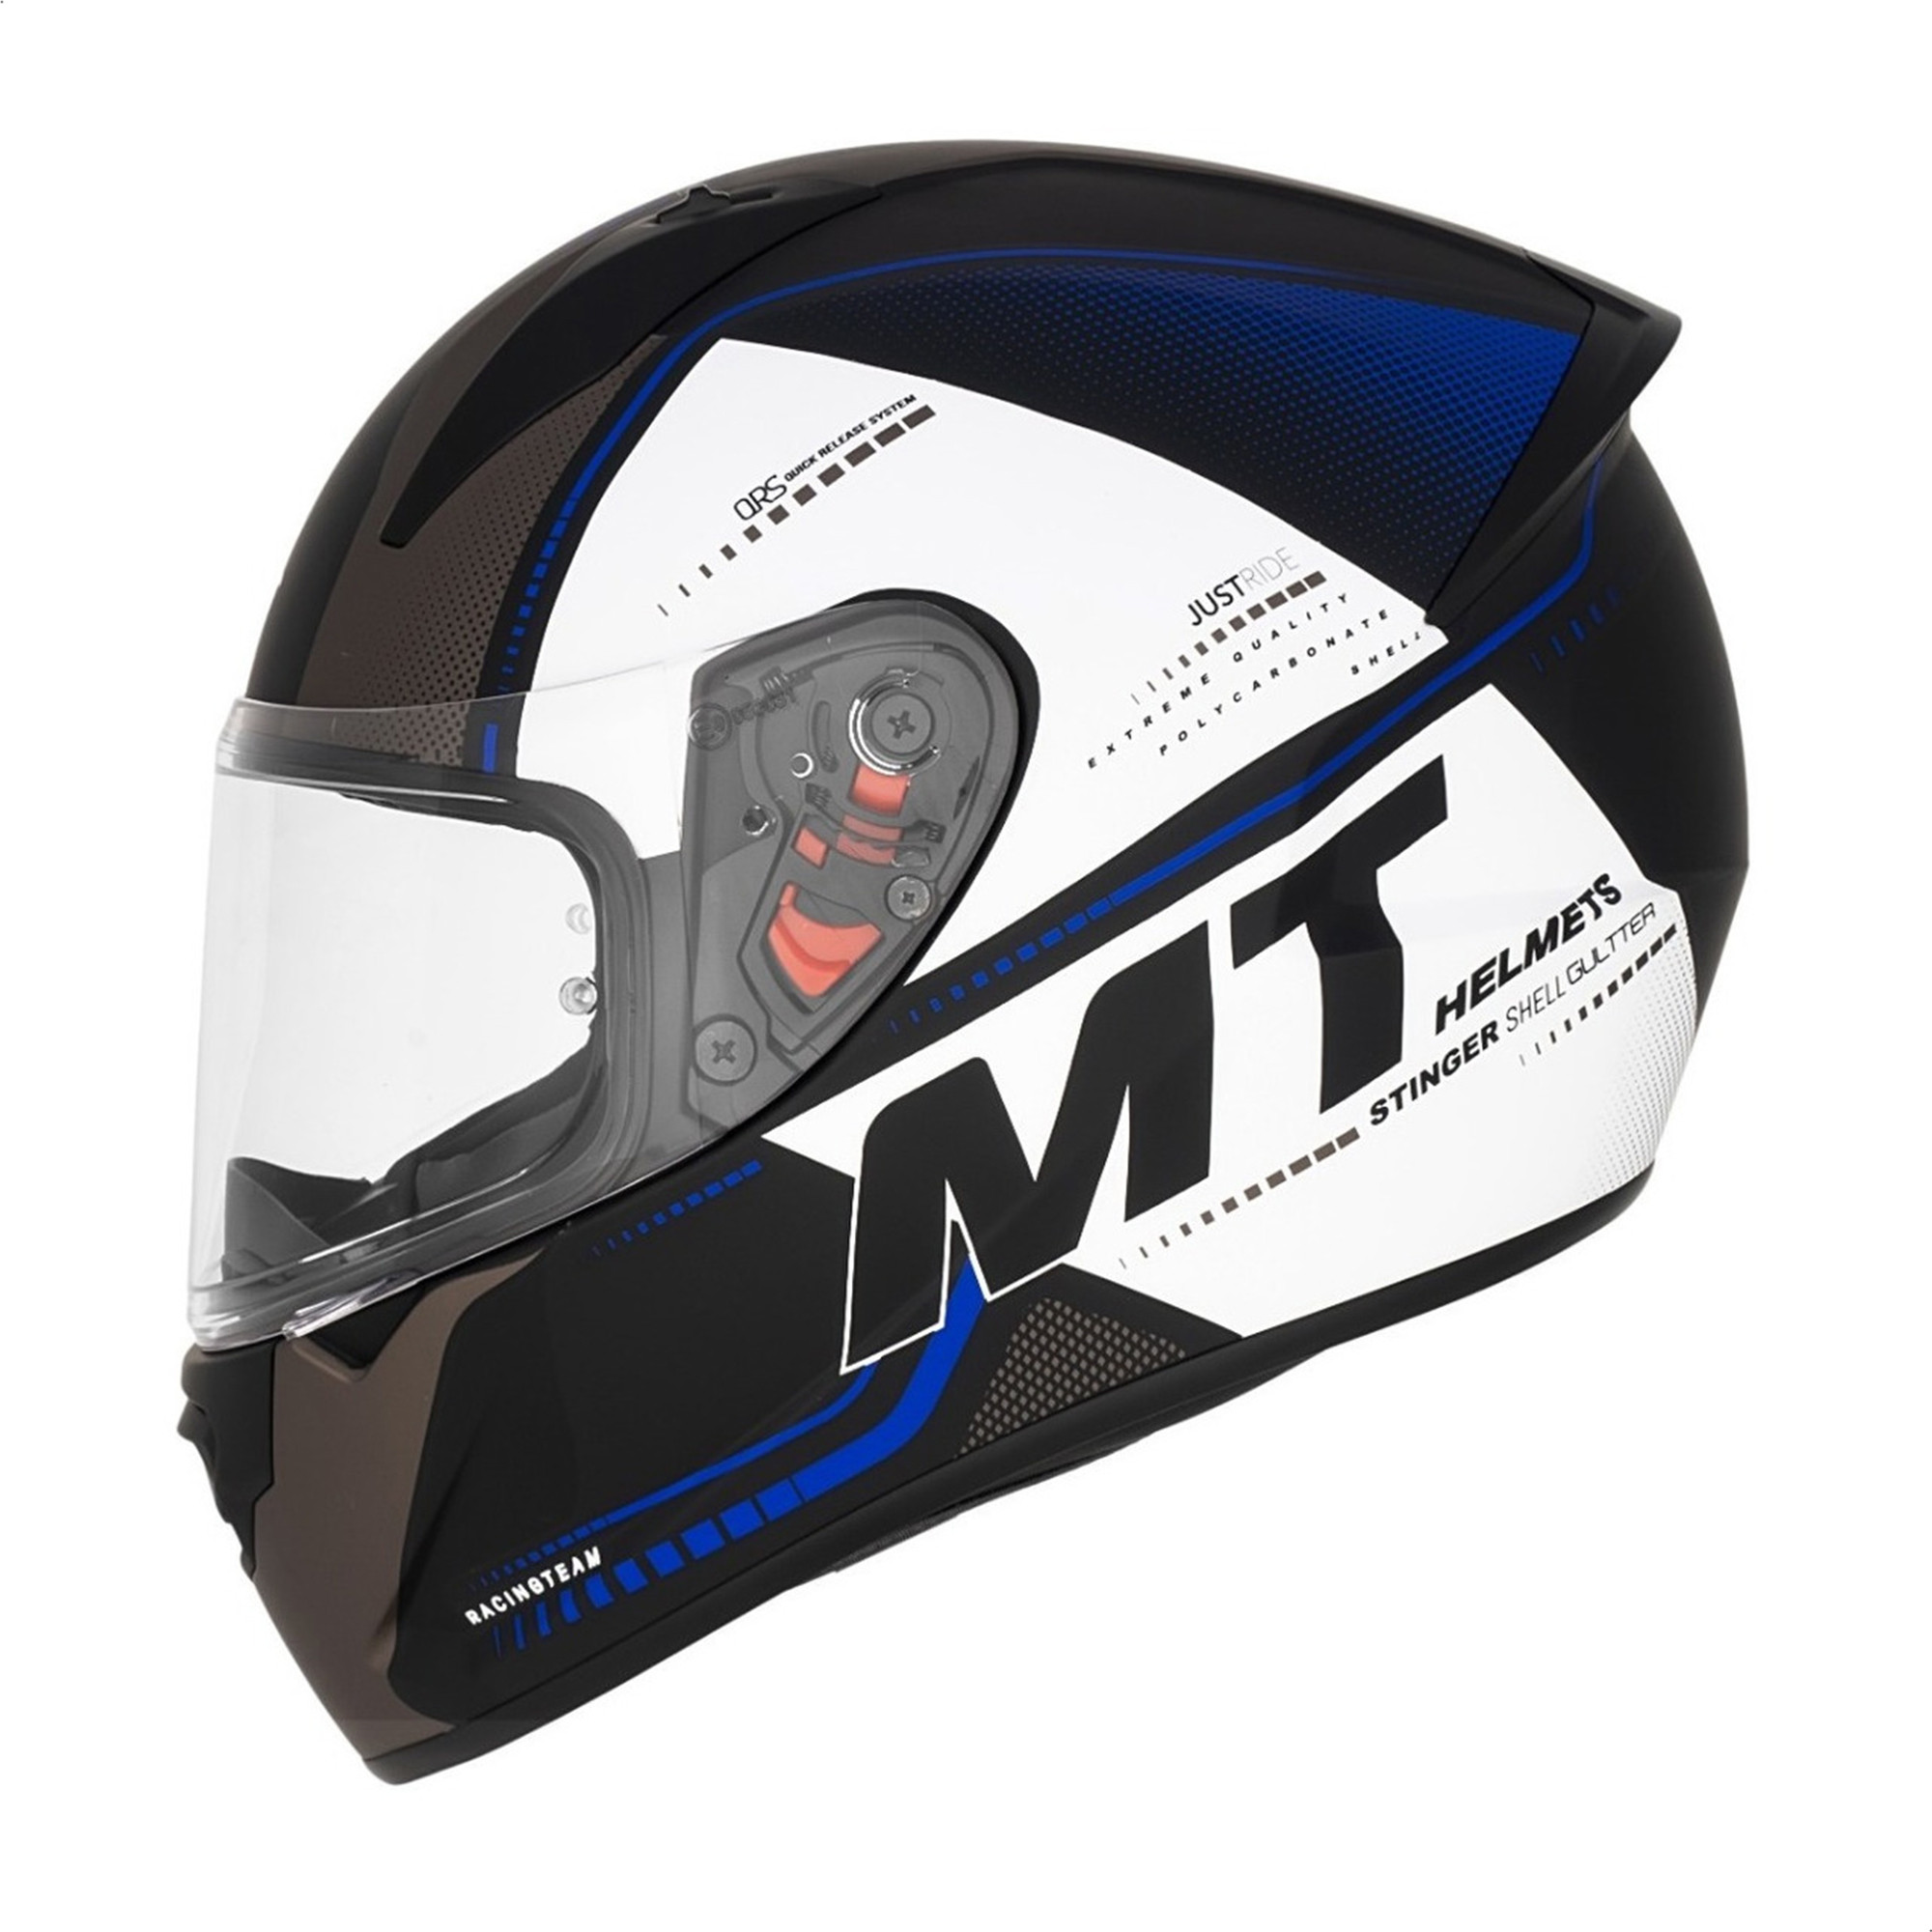 Casco Integral Mt Stinger Gultter C7 Azul Mate